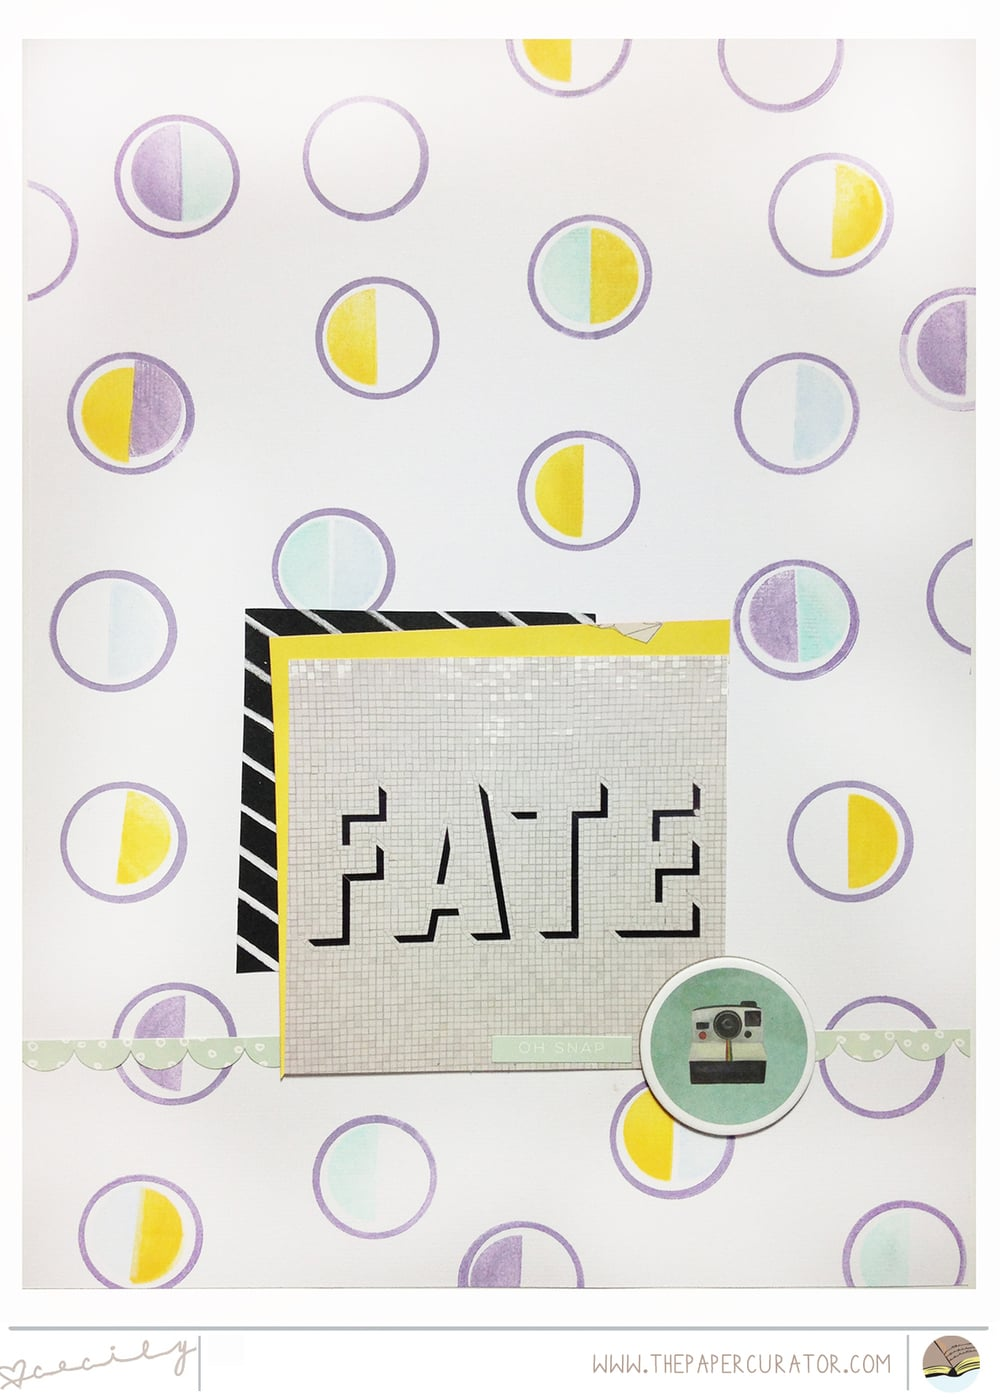 SUNDAY SKETCH NO. 43 WITH 'FATE' SCRAPBOOK LAYOUT | THE PAPER CURATOR